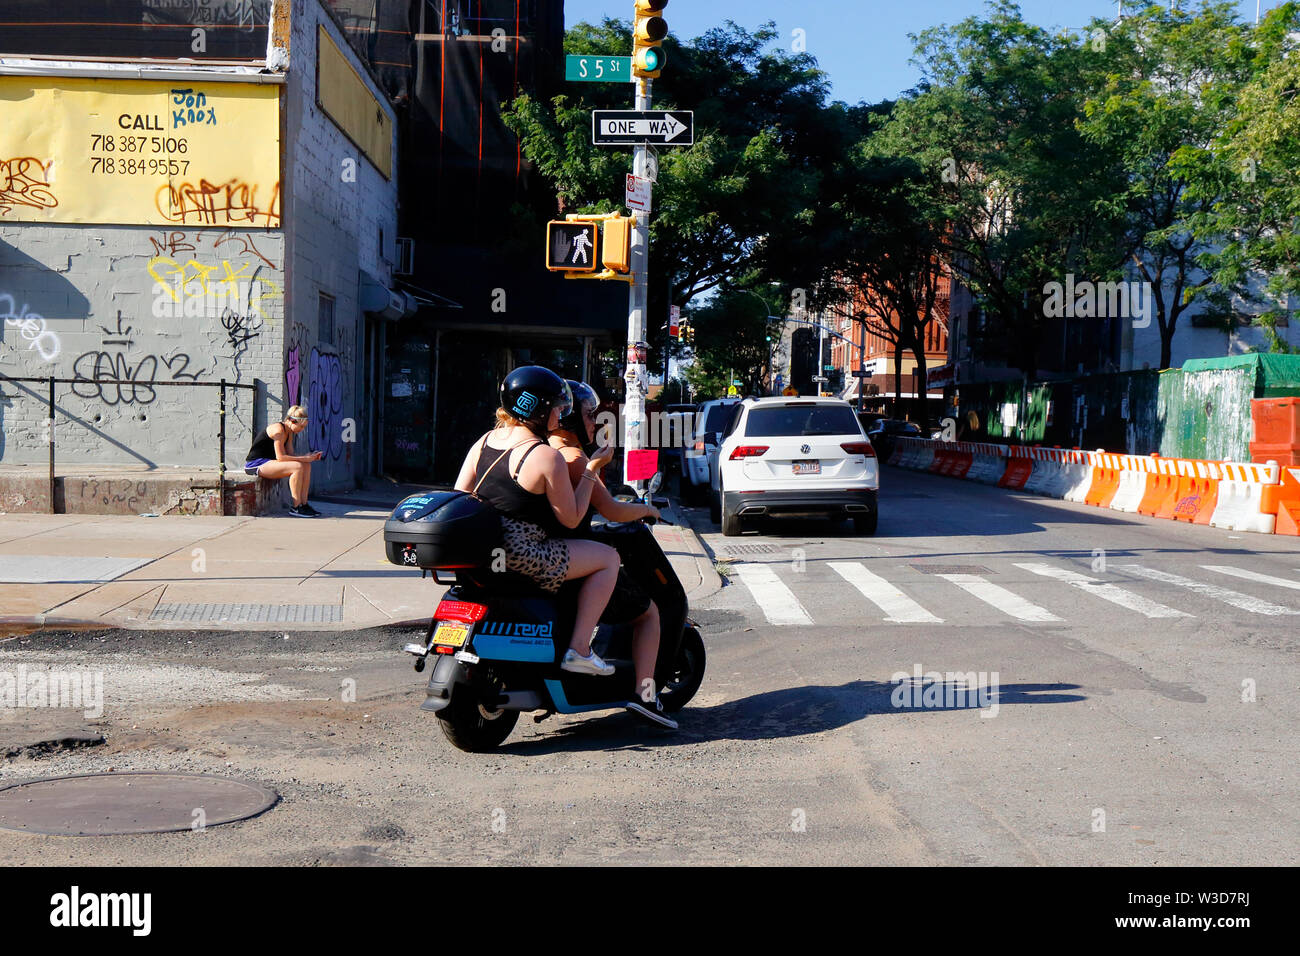 Electric Moped Stock Photos & Electric Moped Stock Images - Alamy